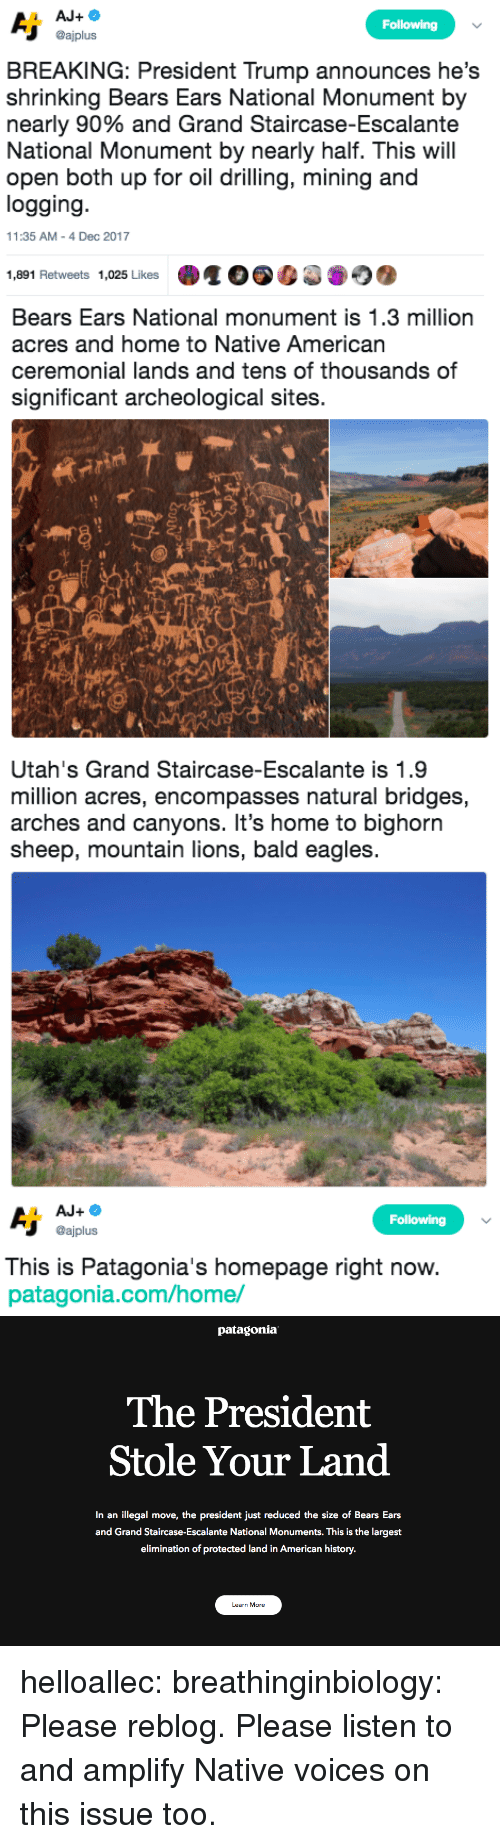 Philadelphia Eagles, Native American, and Target: Following  @ajplus  BREAKING: President Trump announces he's  shrinking Bears Ears National Monument by  nearly 90% and Grand Staircase-Escalante  National Monument by nearly half. This will  open both up for oil drilling, mining and  logging  11:35 AM-4 Dec 2017  1,891 Retweets 1,025 Likes   Bears Ears National monument is 1.3 million  acres and home to Native American  ceremonial lands and tens of thousands of  significant archeological sites.  sh   Utah's Grand Staircase-Escalante is 1.9  million acres, encompasses natural bridges,  arches and canyons. It's home to bighorn  sheep, mountain lions, bald eagles   Following  @ajplus  This is Patagonia's homepage right now  patagonia.com/home/   patagonia  The President  Stole Your Land  In an illegal move, the president just reduced the size of Bears Ears  and Grand Staircase-Escalante National Monuments. This is the largest  elimination of protected land in American history.  Learn More helloallec: breathinginbiology: Please reblog.  Please listen to and amplify Native voices on this issue too.